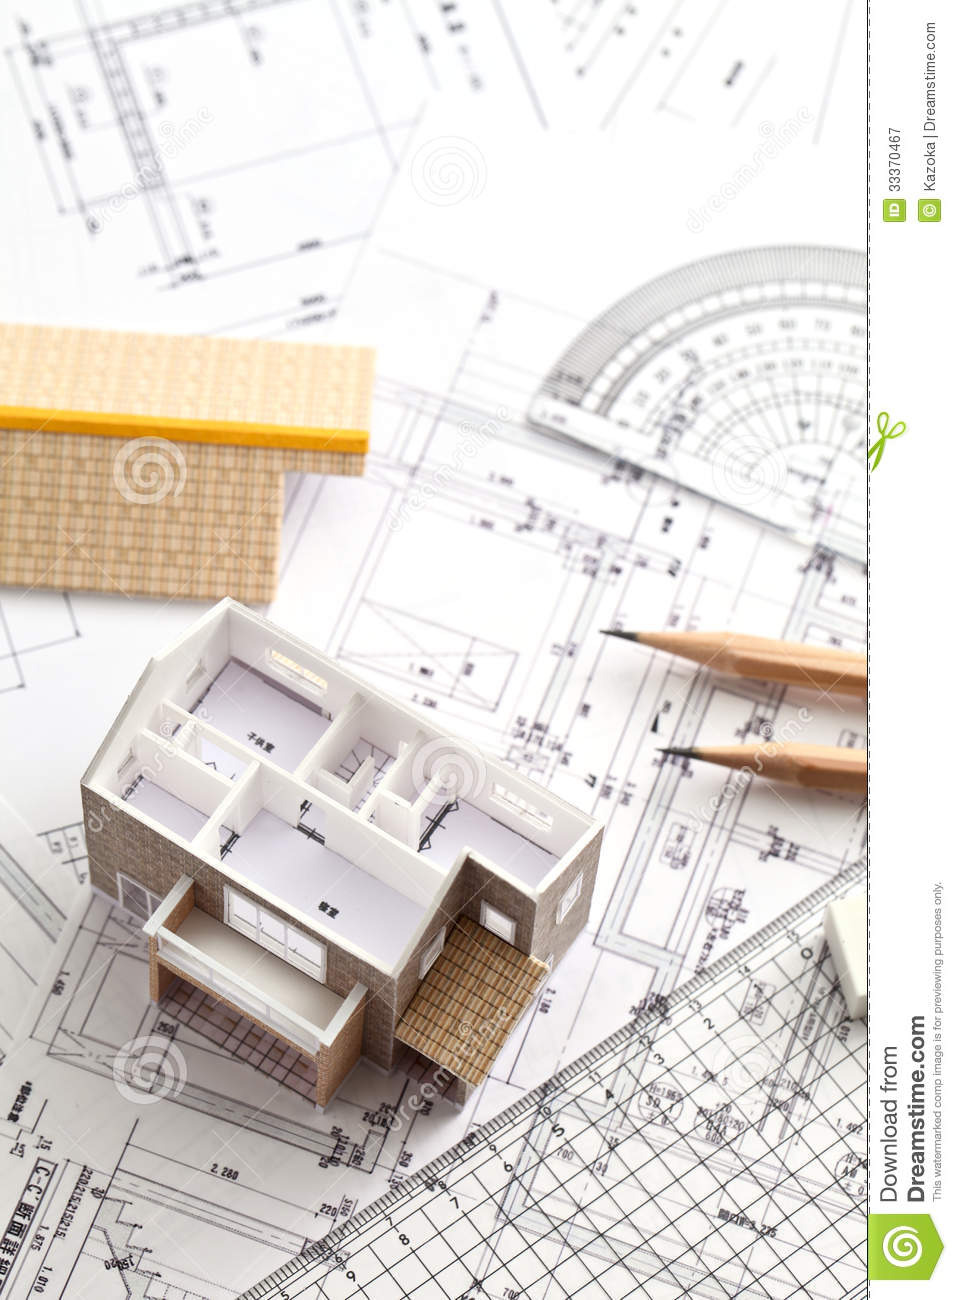 Draw Own House Plans Free New House Design Drawing Stock Image Image Of Modern